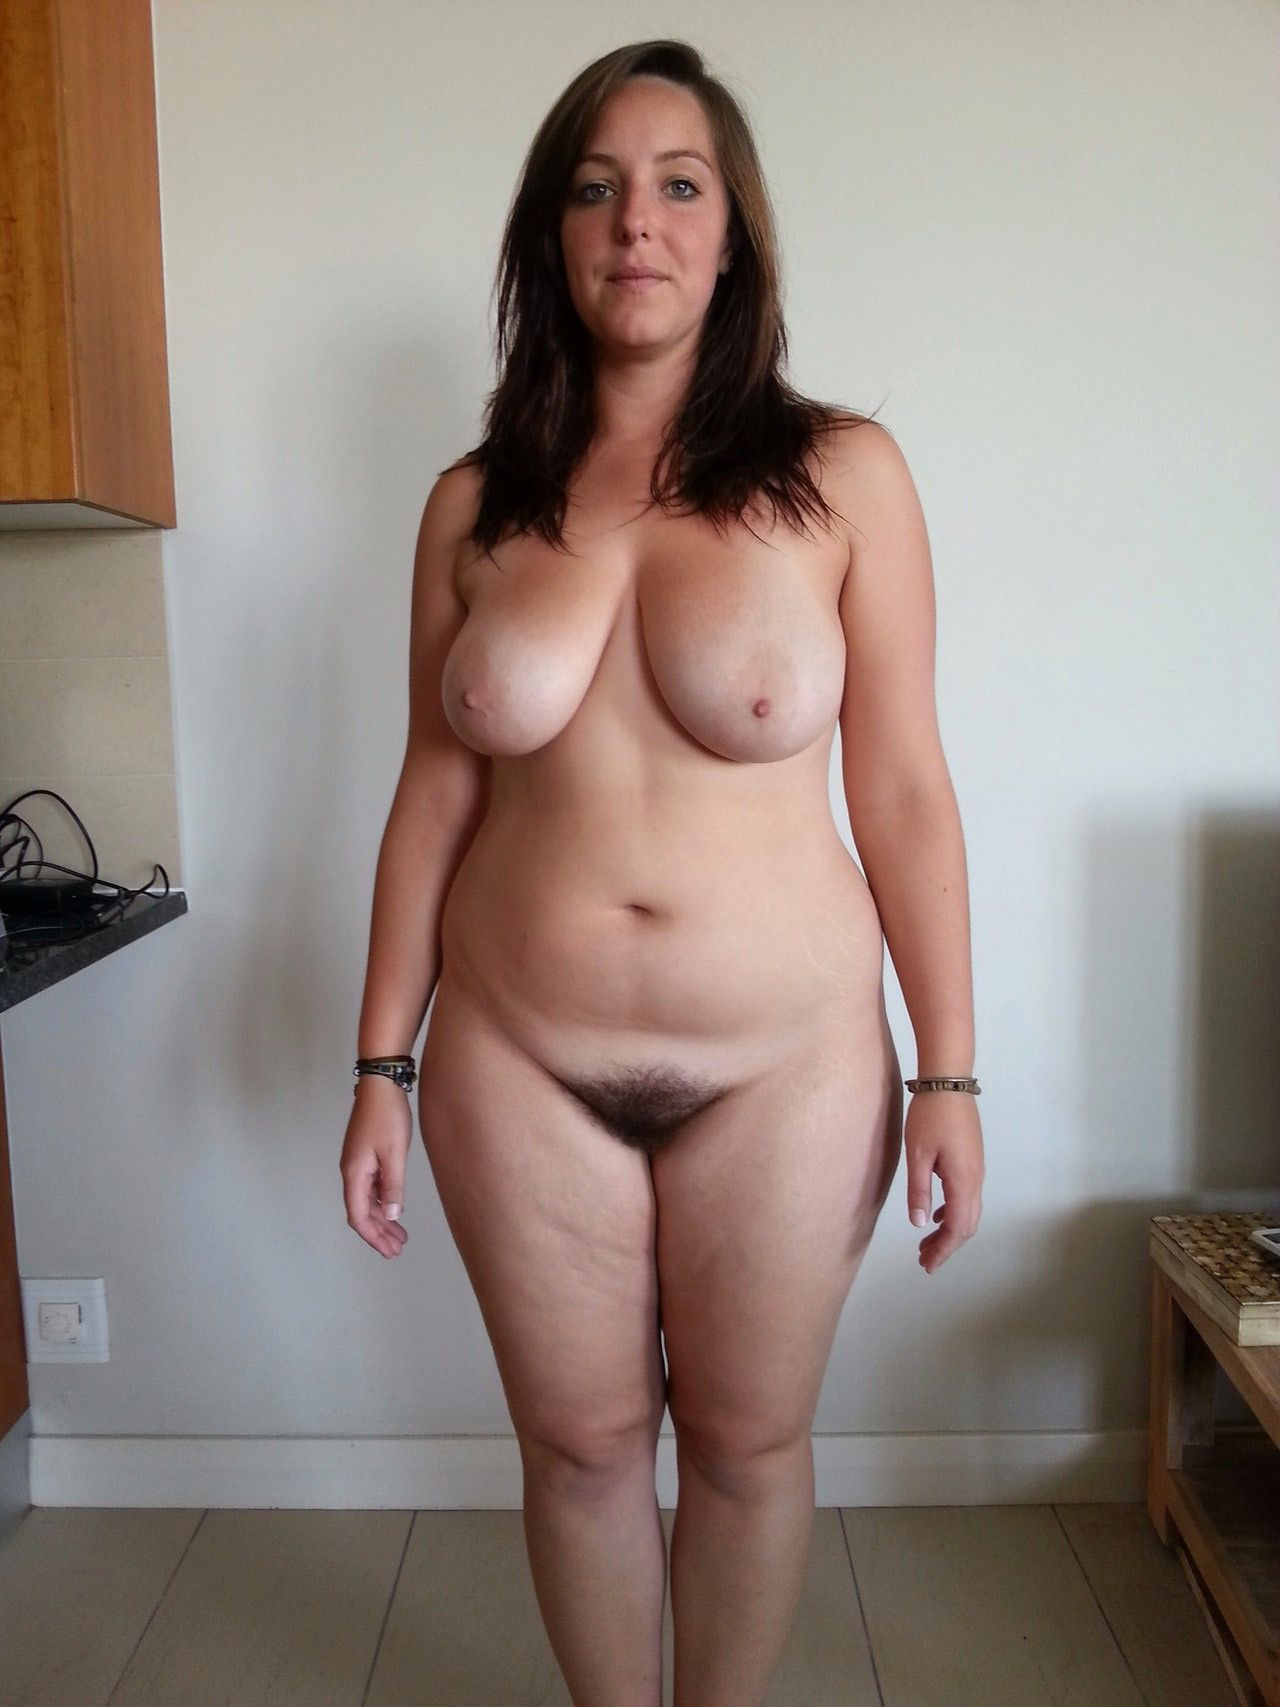 Chubby amatuer wife videos pic 574